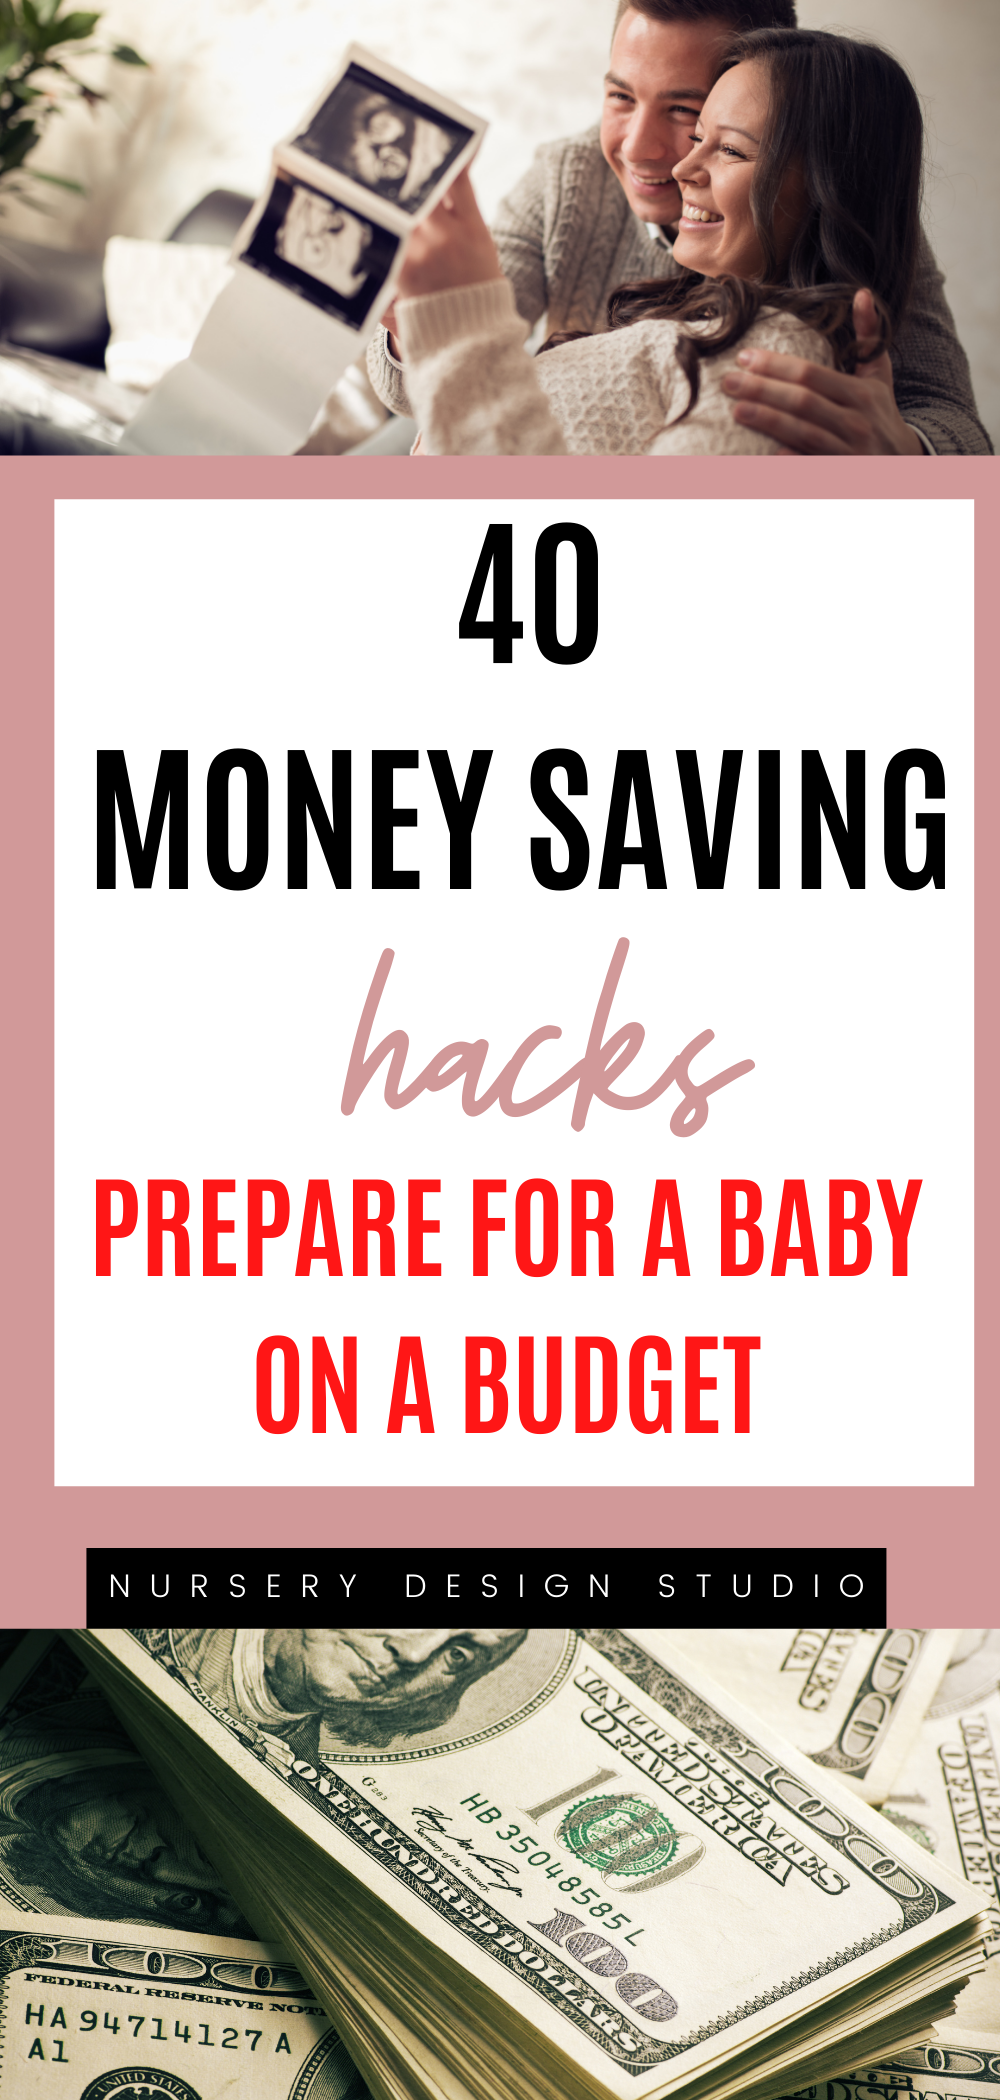 prepare for a baby on a budget